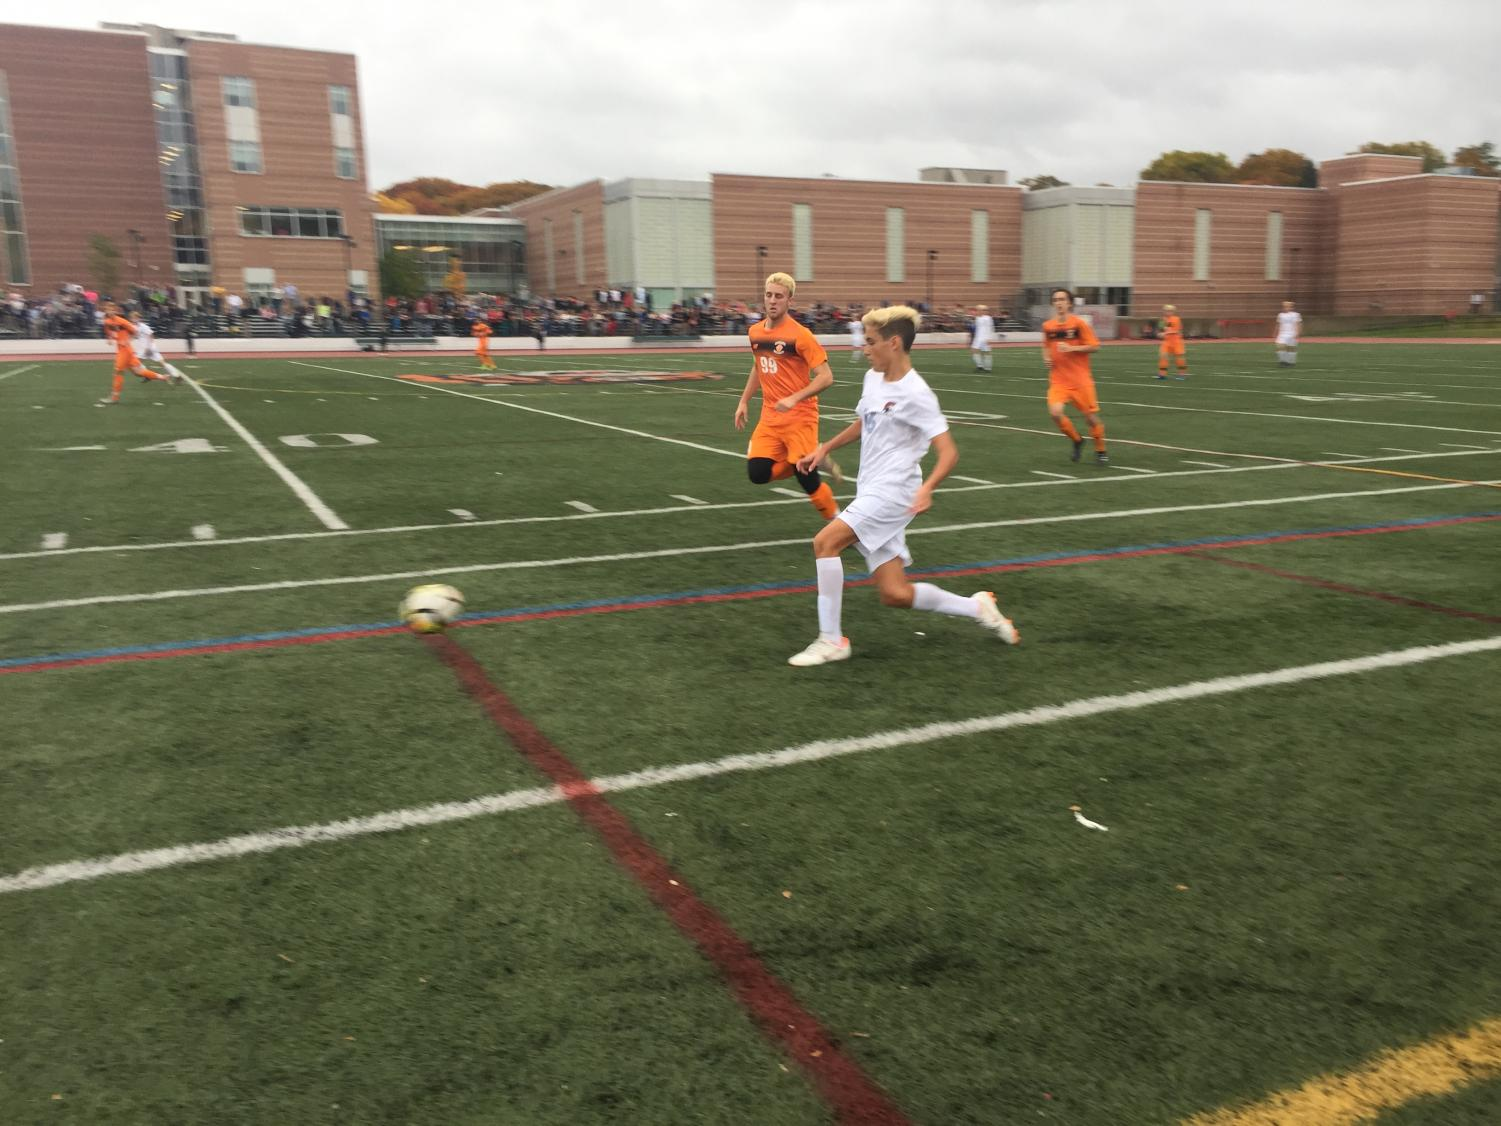 Junior Manuel Lancastre takes the ball up the field in a playoff game versus Newton North. Coach Kyle-Beaulieu-Jones attributes the team's success this season to their bond.